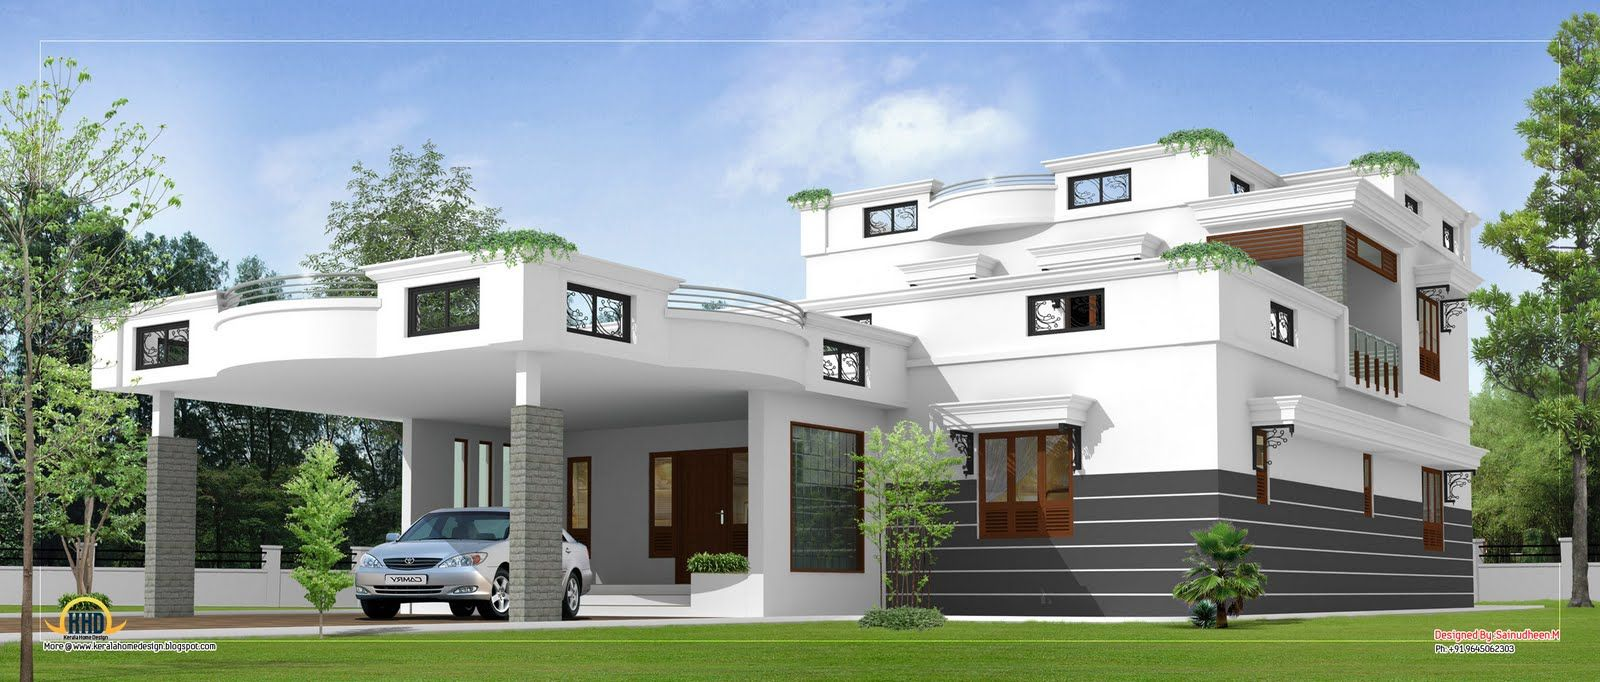 smart house design australia 1925 sq ft kerala home design - New Contemporary Home Designs